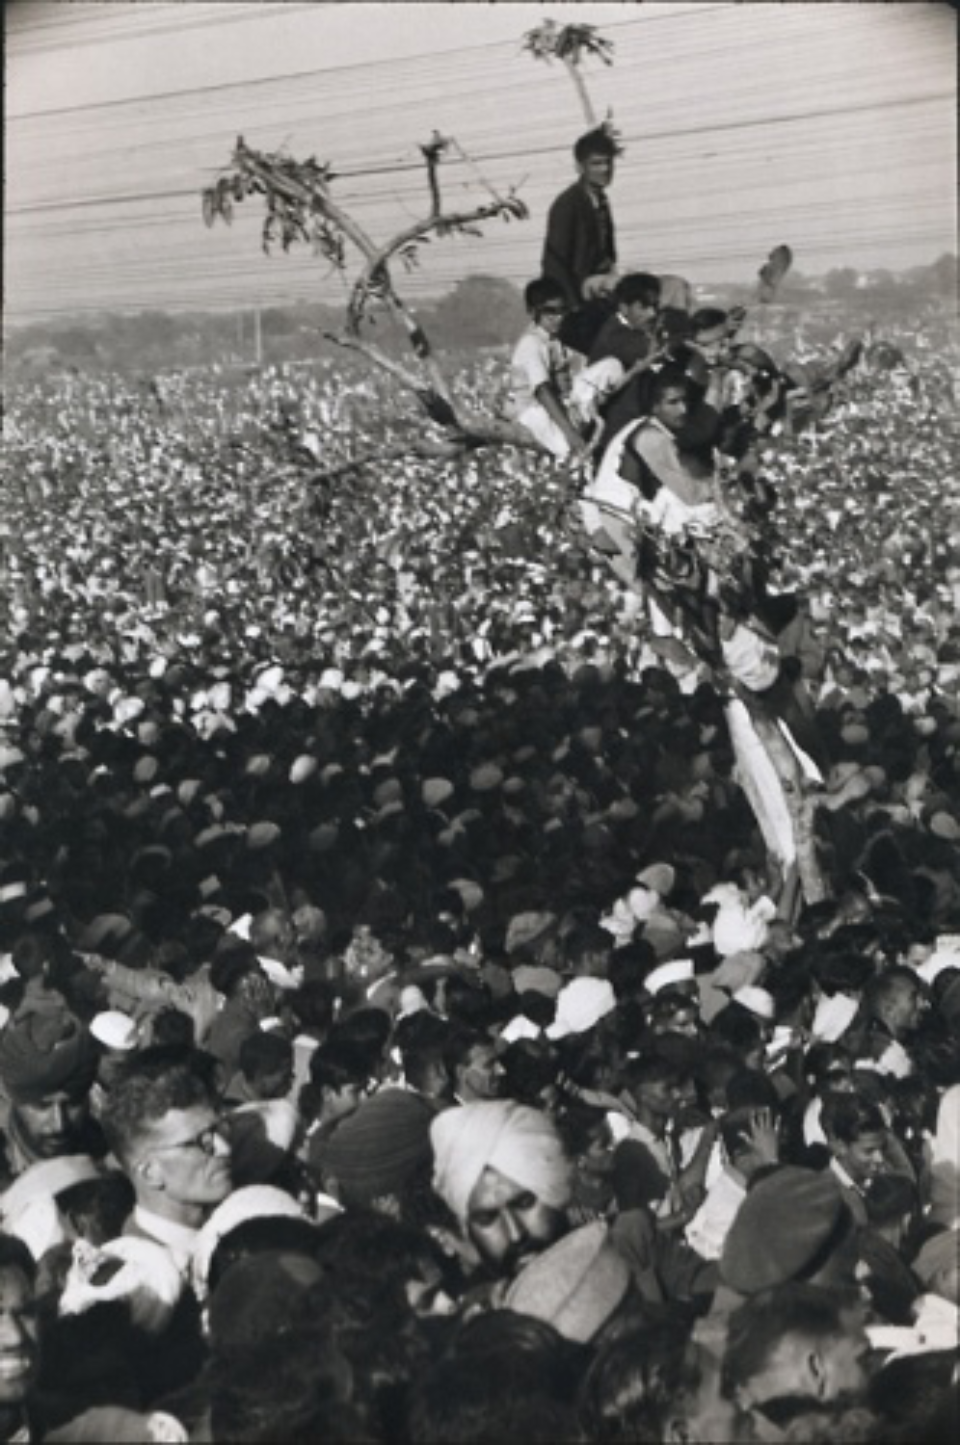 Henri Cartier-Bresson: Crowds Wait for Gandhi's Funeral Cortege India, 1948